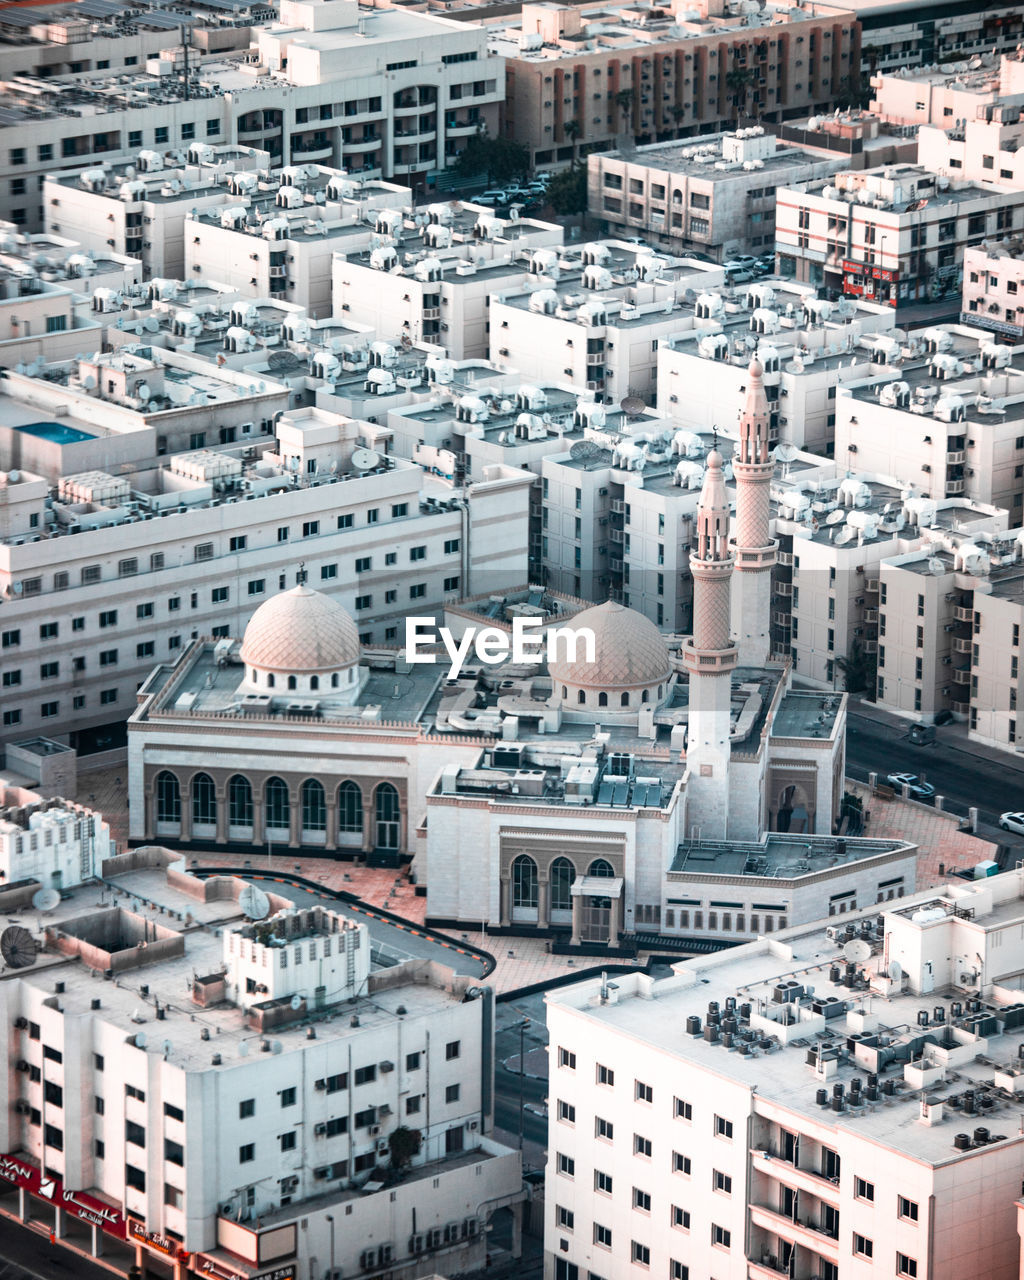 A white mosque in an urban city surrounded by apartment buildings, with the dome and minaret